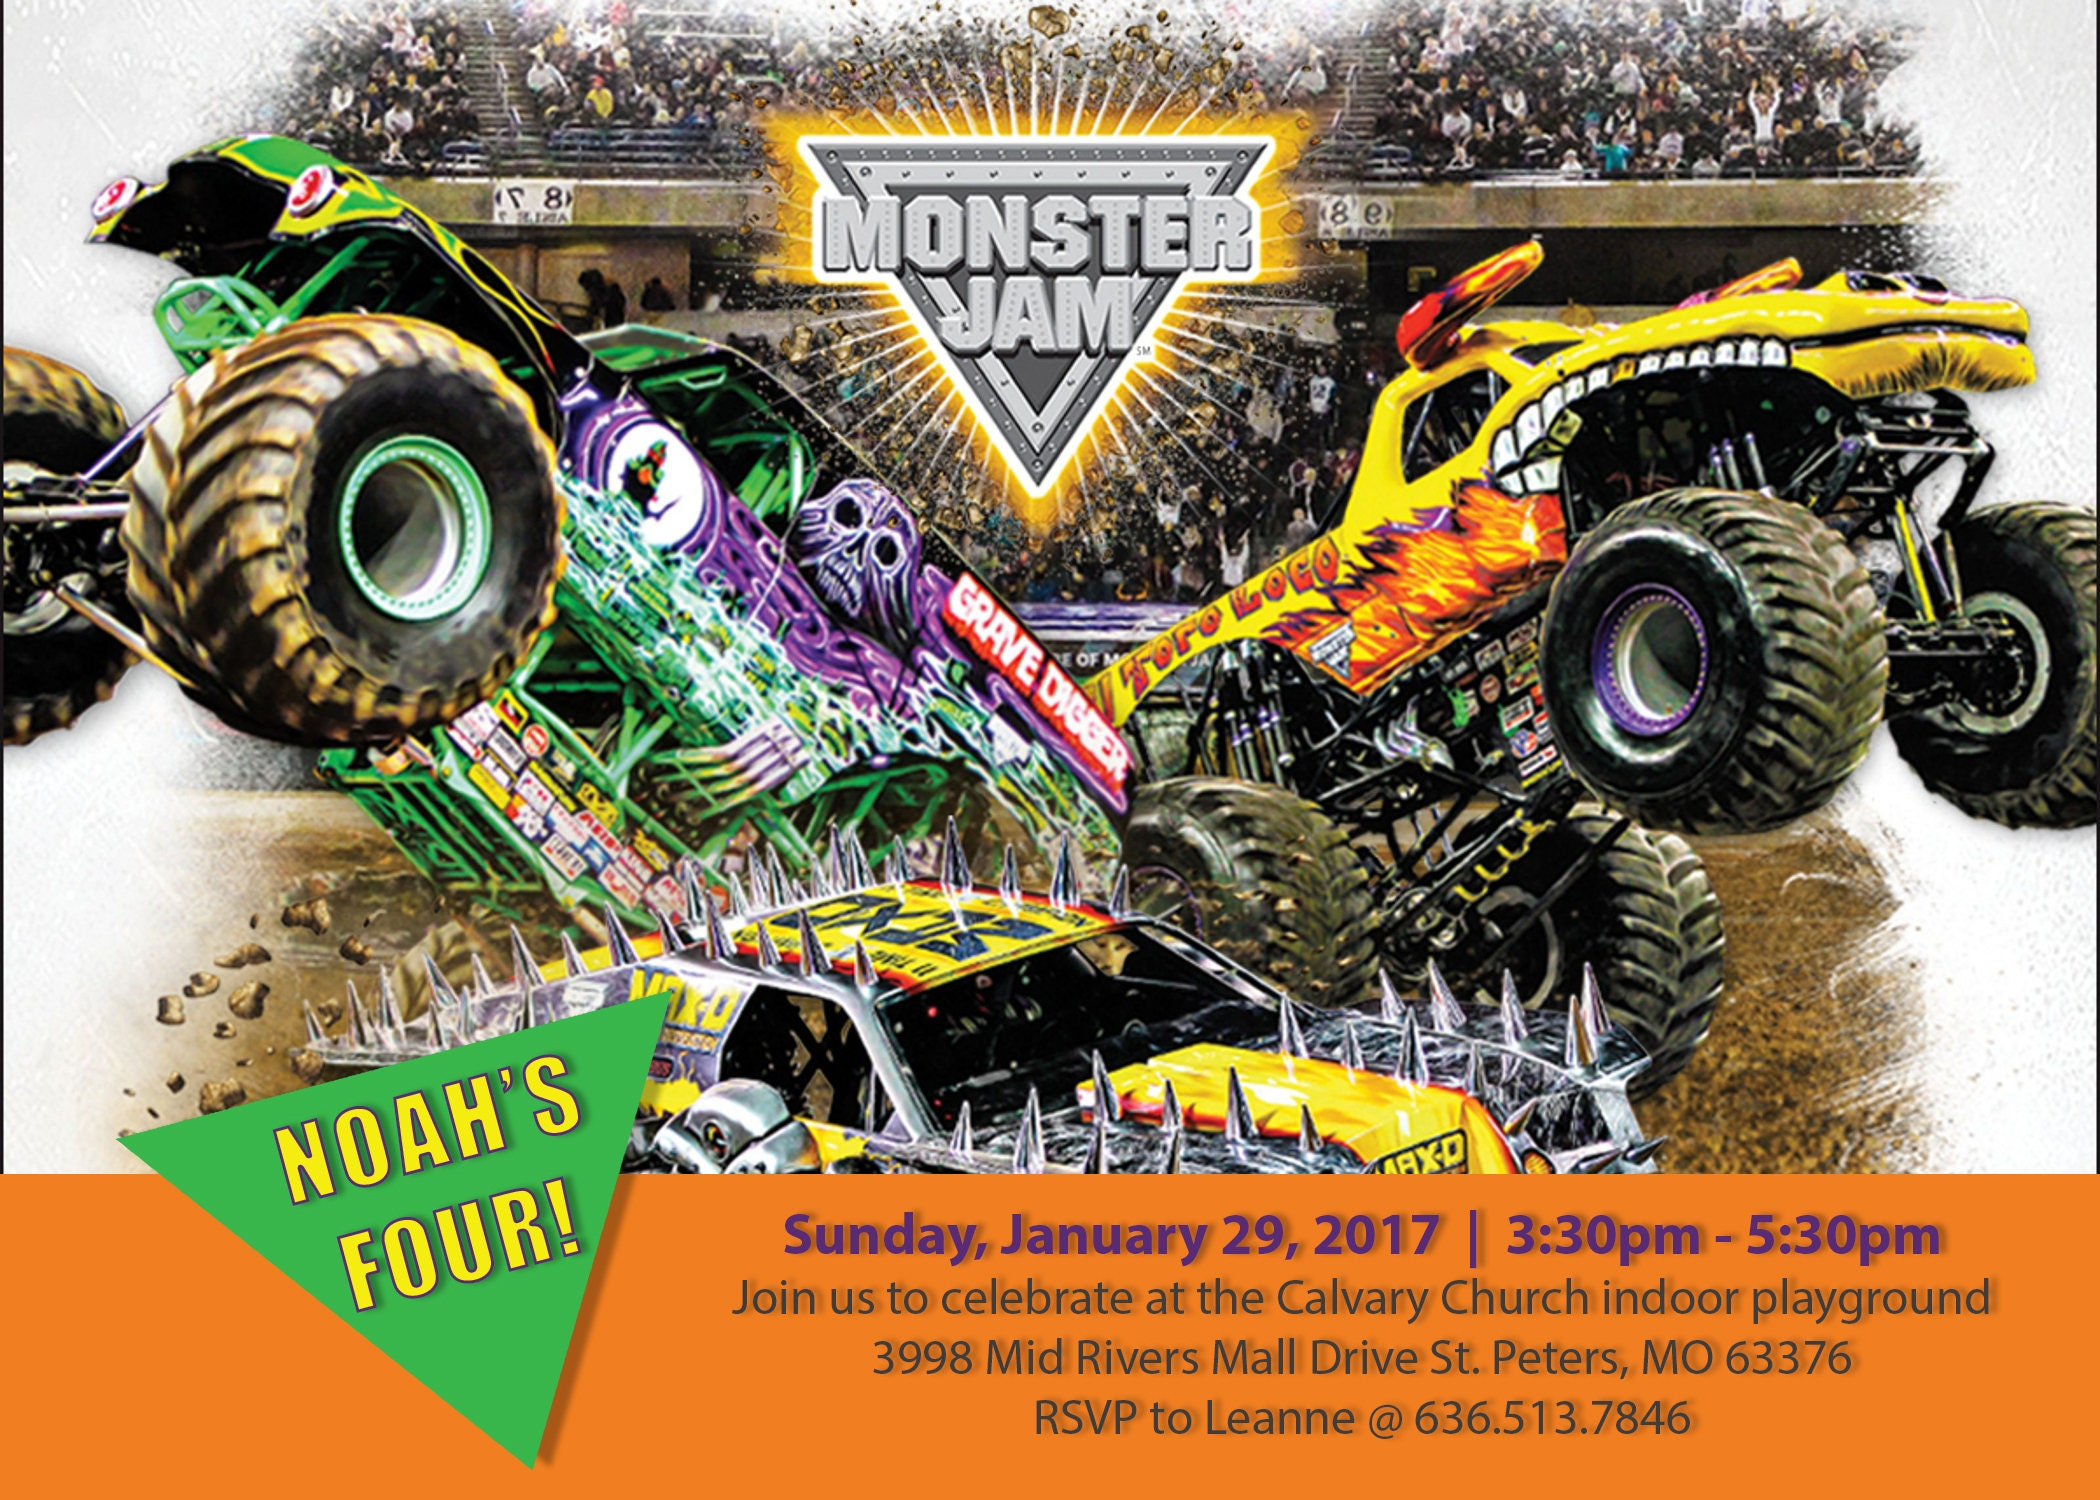 Grave digger birthday party invitations image collections grave digger birthday party invitations image collections grave digger birthday party invitations image collections grave digger filmwisefo